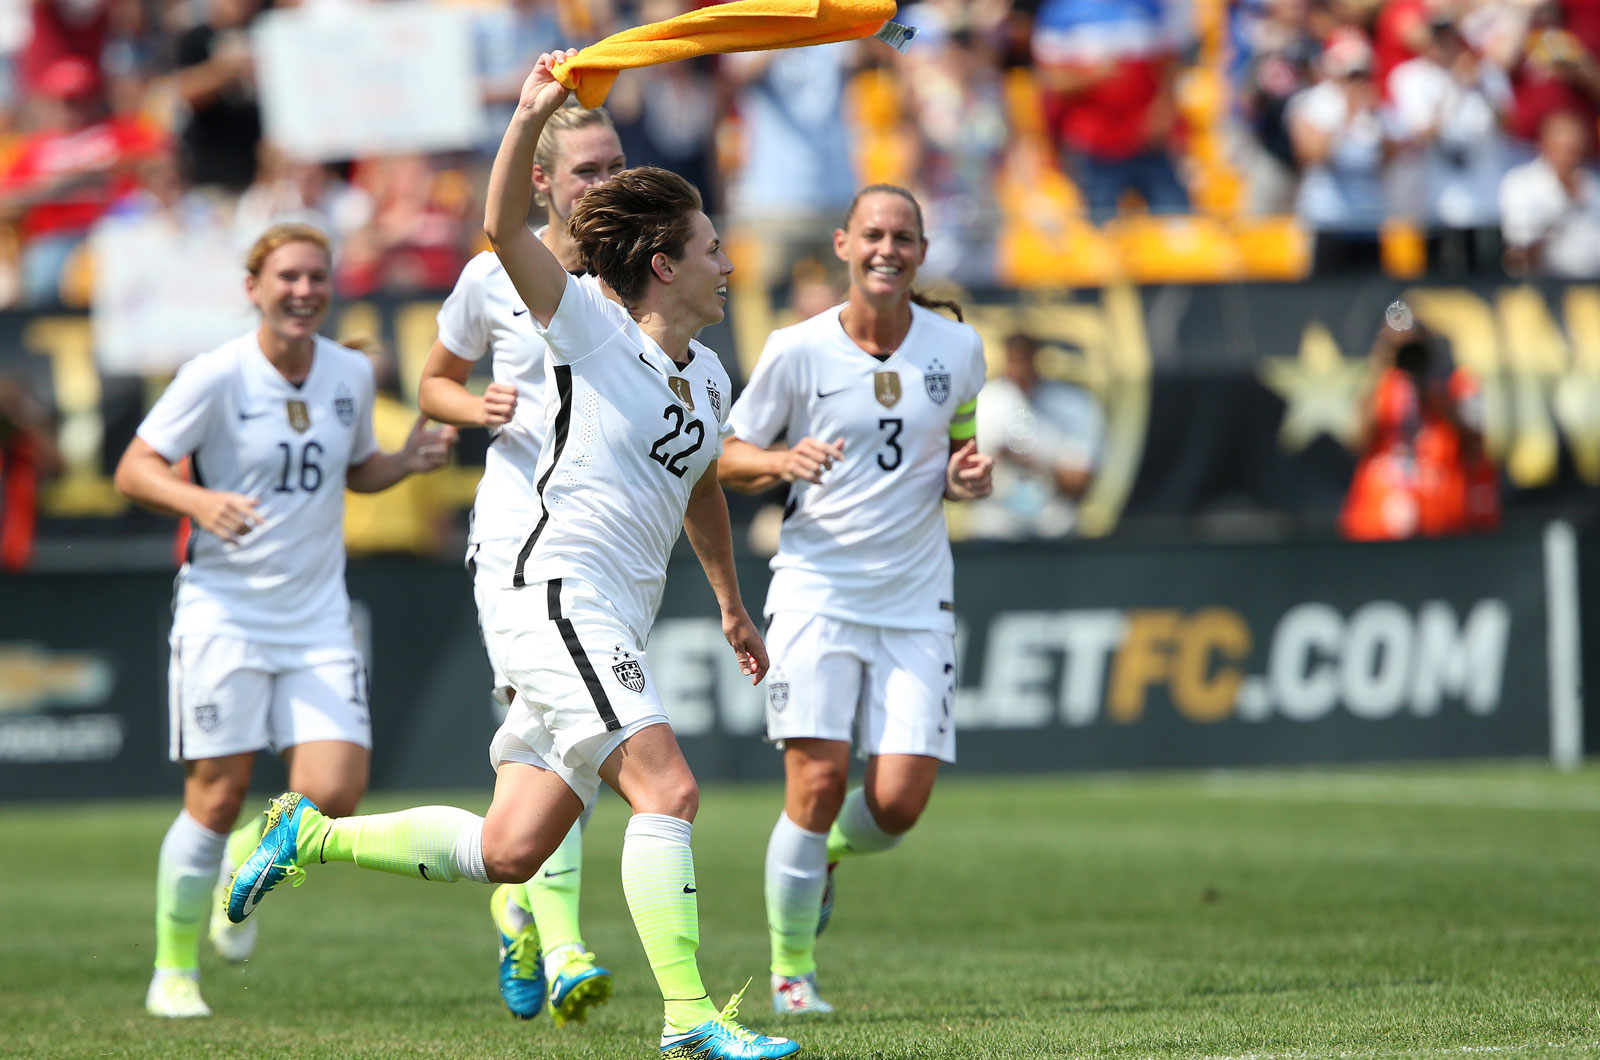 Meghan Klingenberg waves a Terrible Towel in her hometown of Pittsburgh after scoring one of the USA's many goals in an 8-0 rout of Costa Rica in its first game since winning the 2015 Women's World Cup.